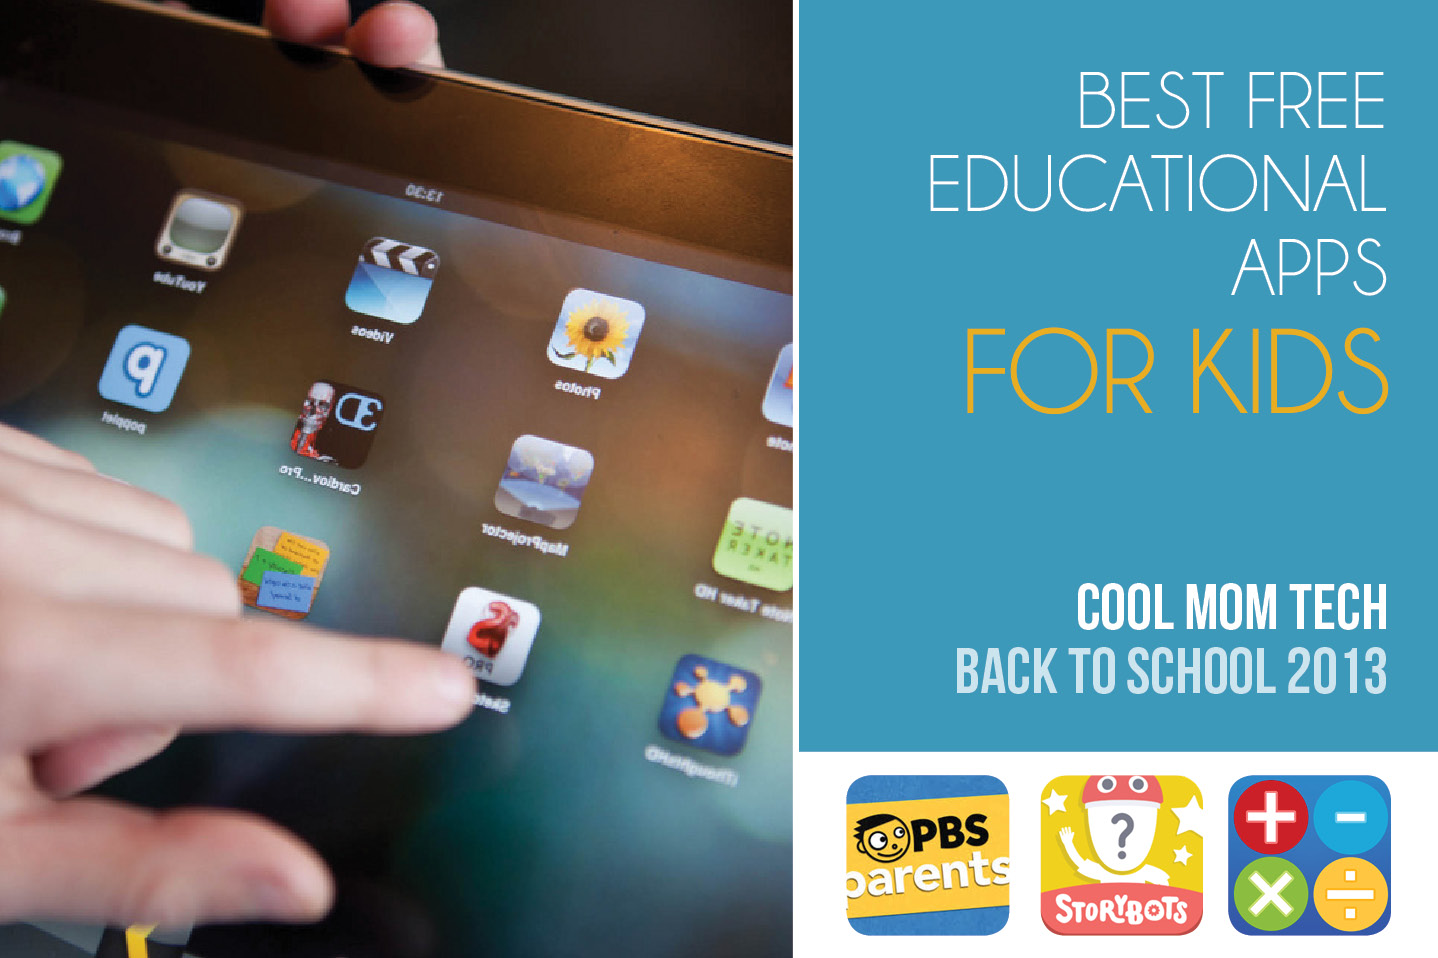 The best free educational apps for kids: Back to School Tech